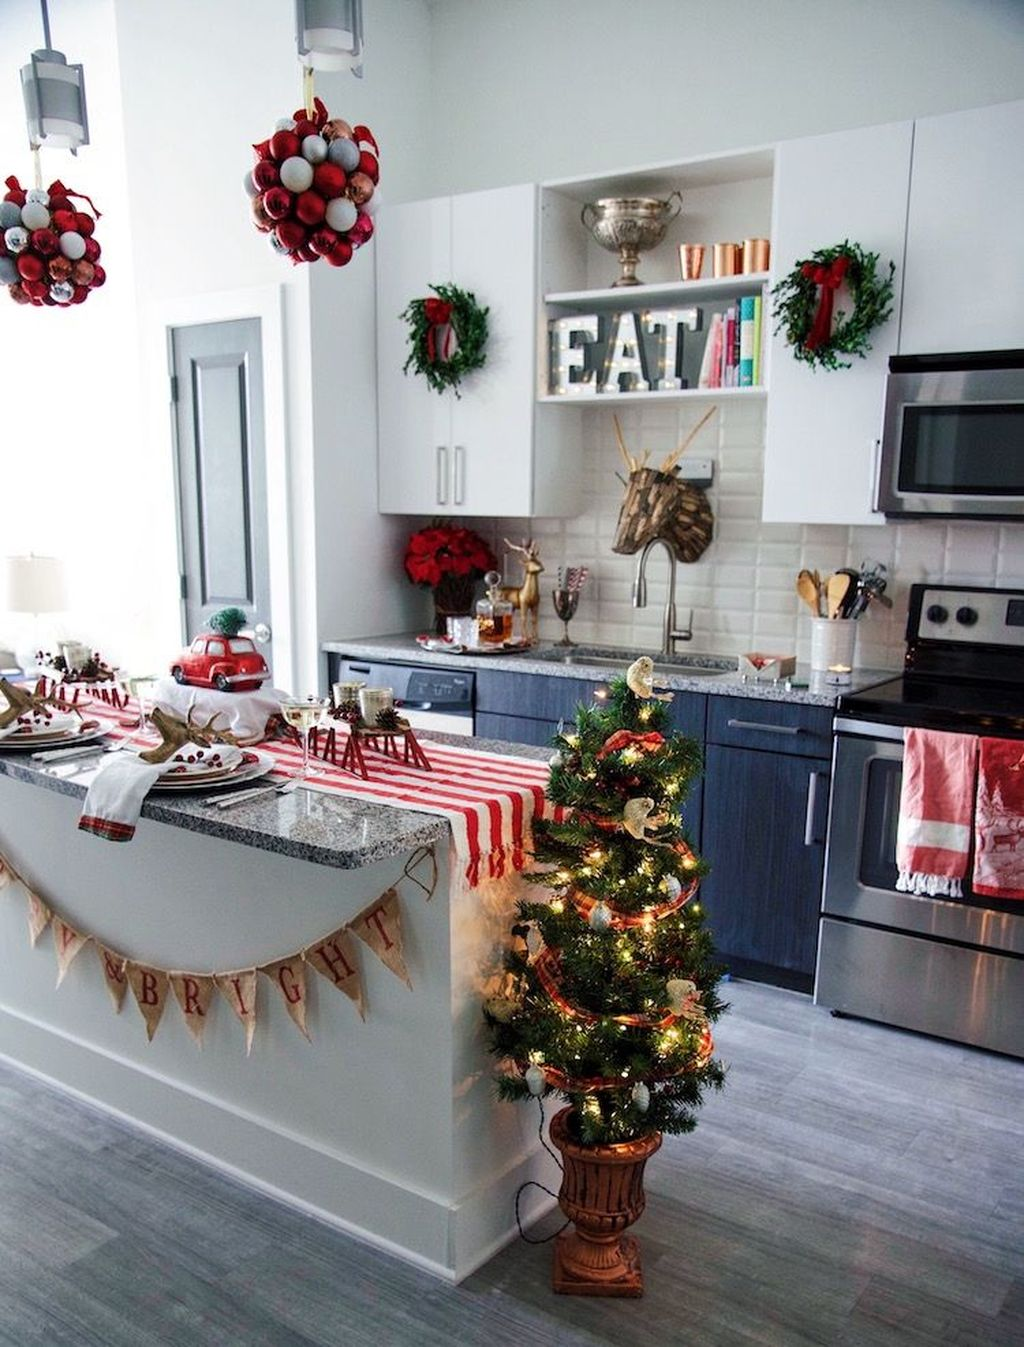 Popular Christmas Decor Ideas For Kitchen Island 02